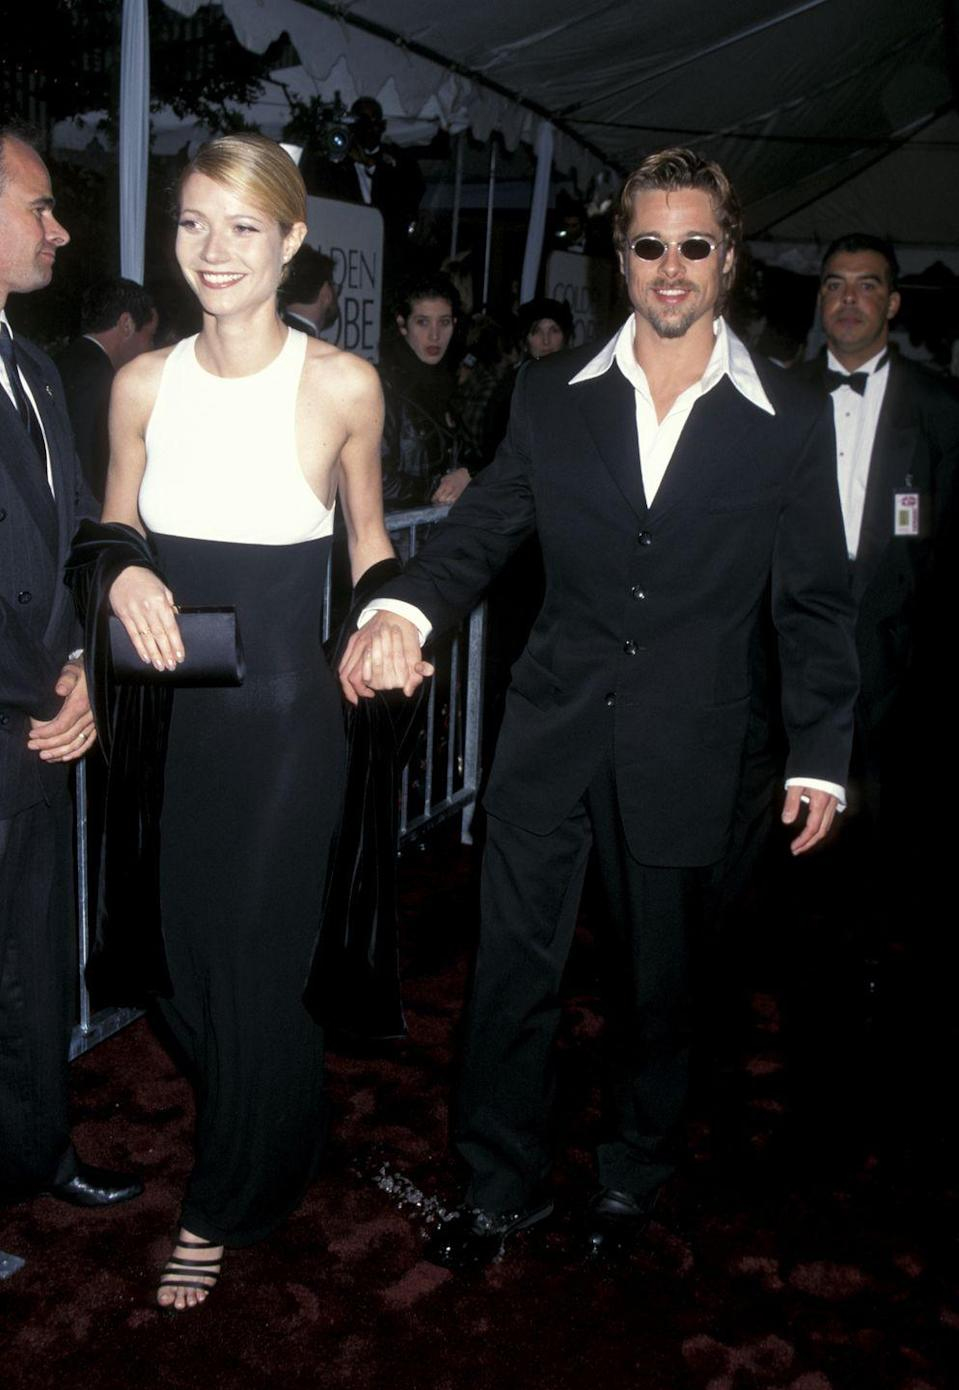 <p>The actor attended the 53rd Annual Golden Globe Awards with Paltrow. He took home the award for Best Supporting Actor that night for <em>Twelve Monkeys</em>. It was Pitt's first and only Golden Globe win to date.</p>